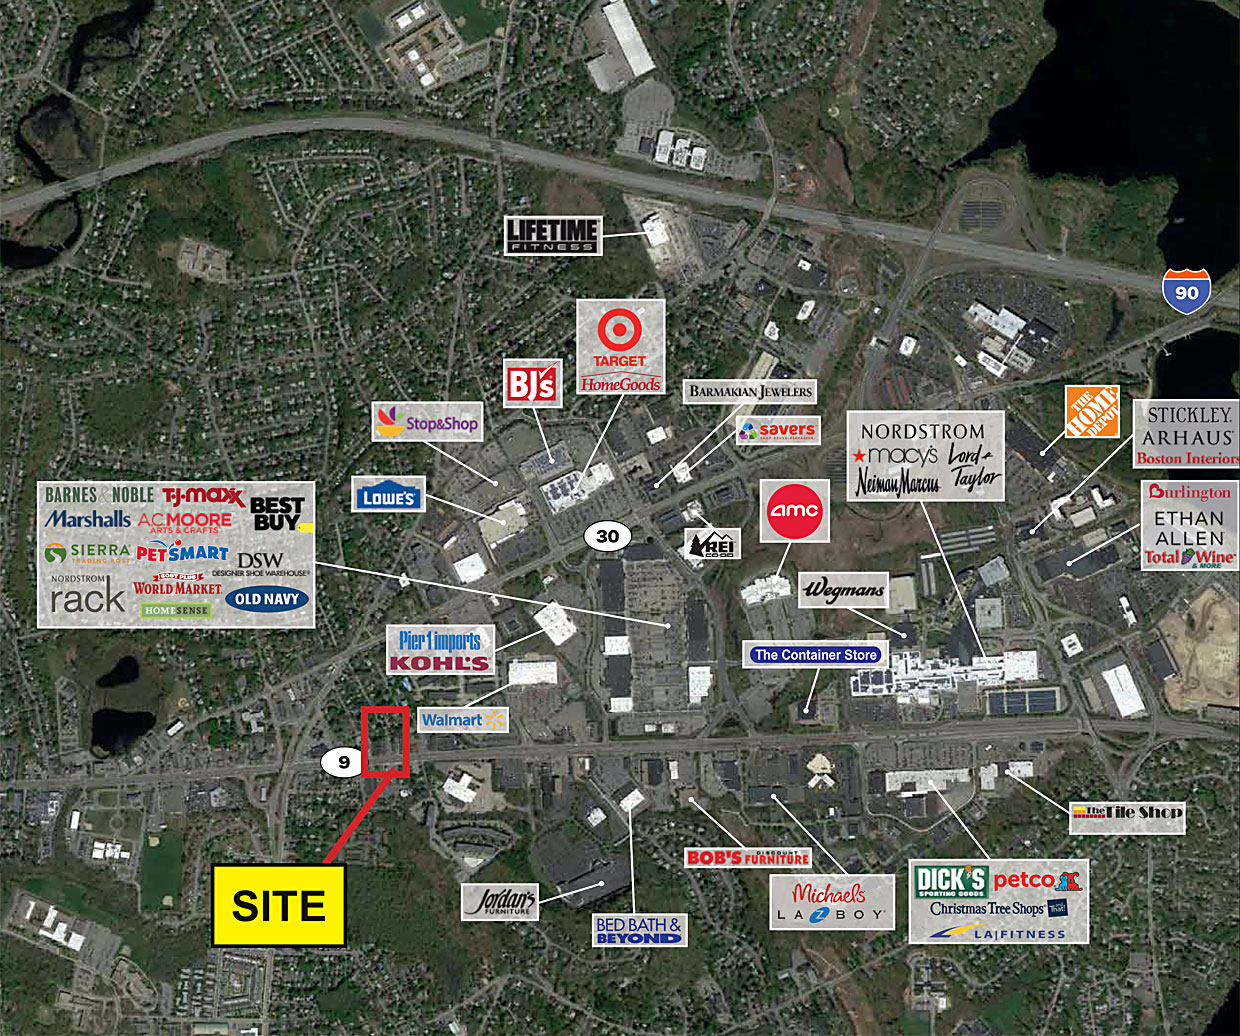 277 279 Worcester Road Framingham Ma Retail Real